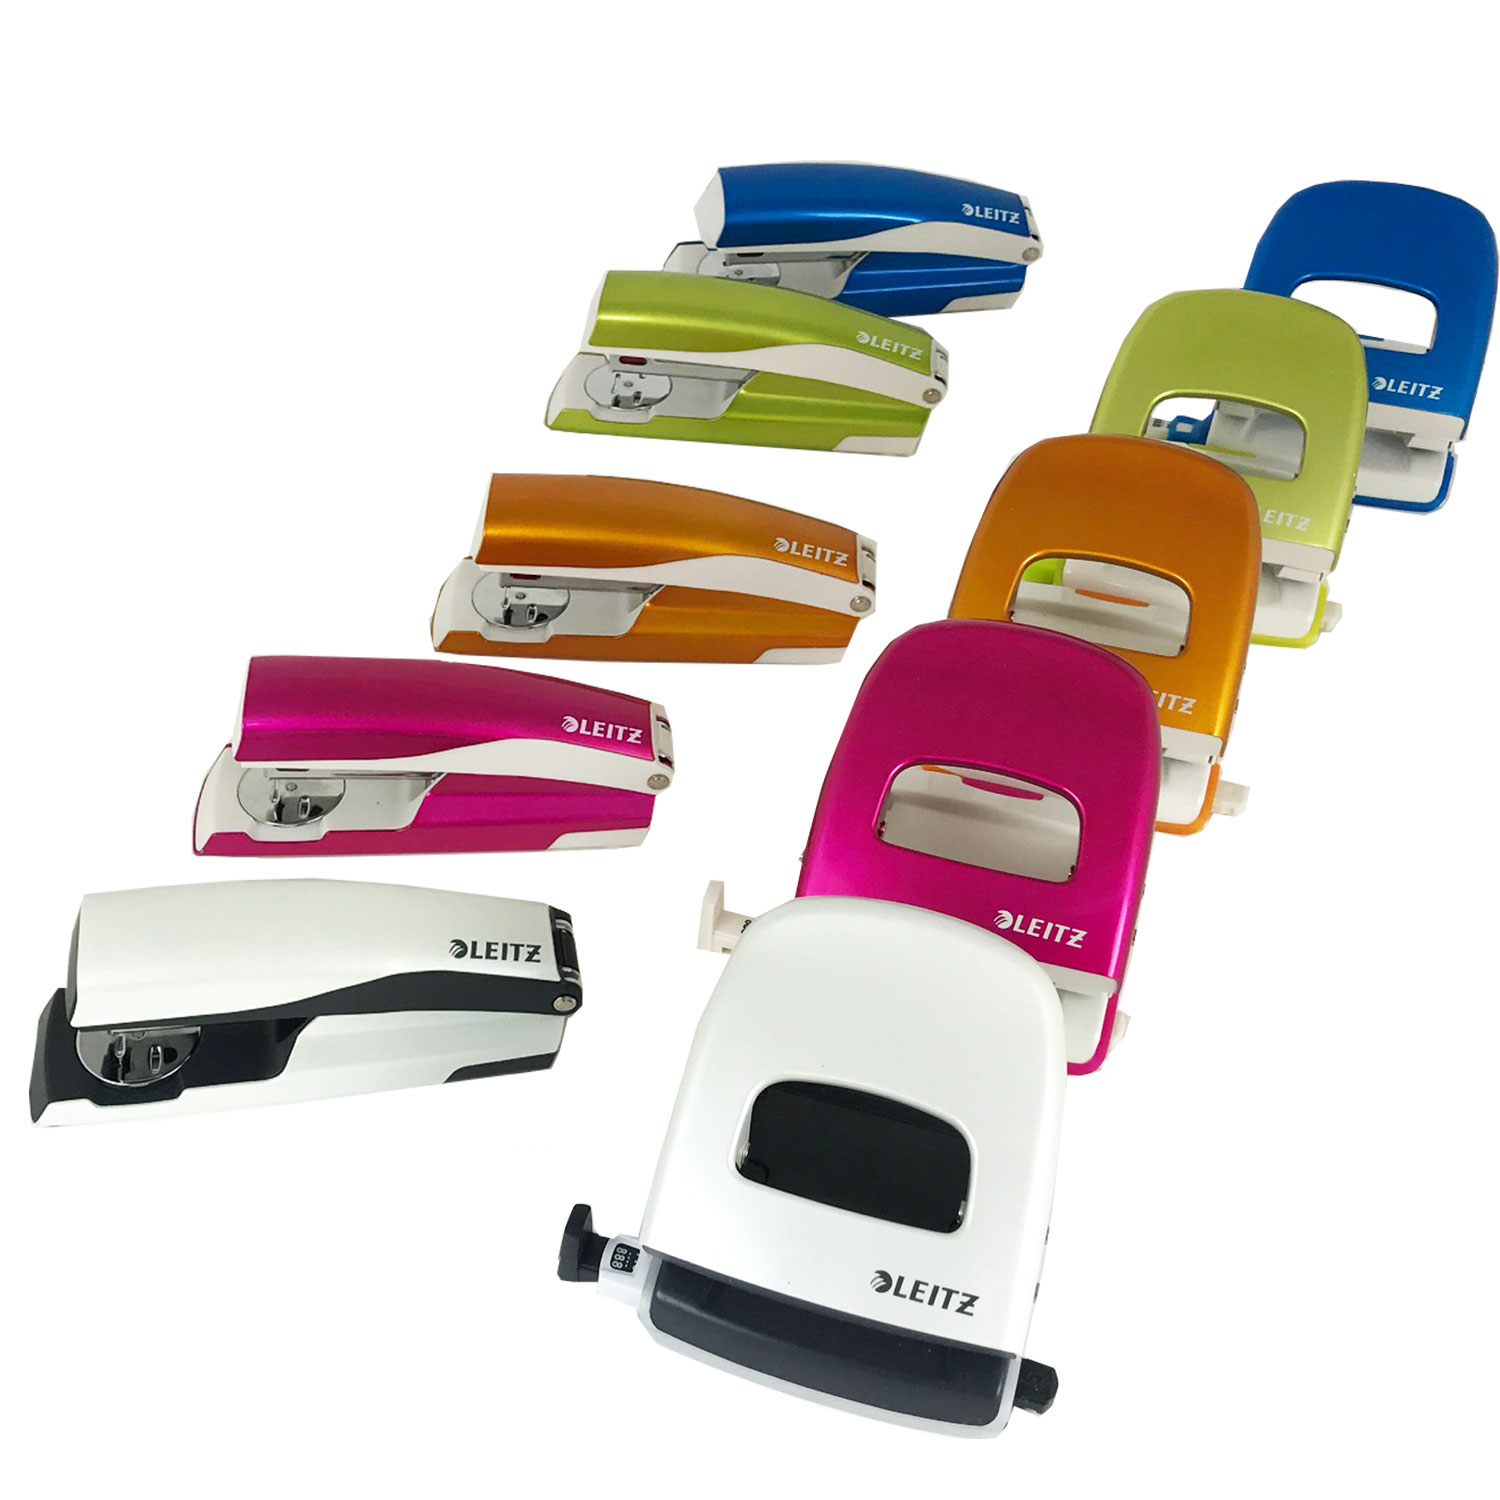 Leitz Wow NeXXT Stapler & Punch Set